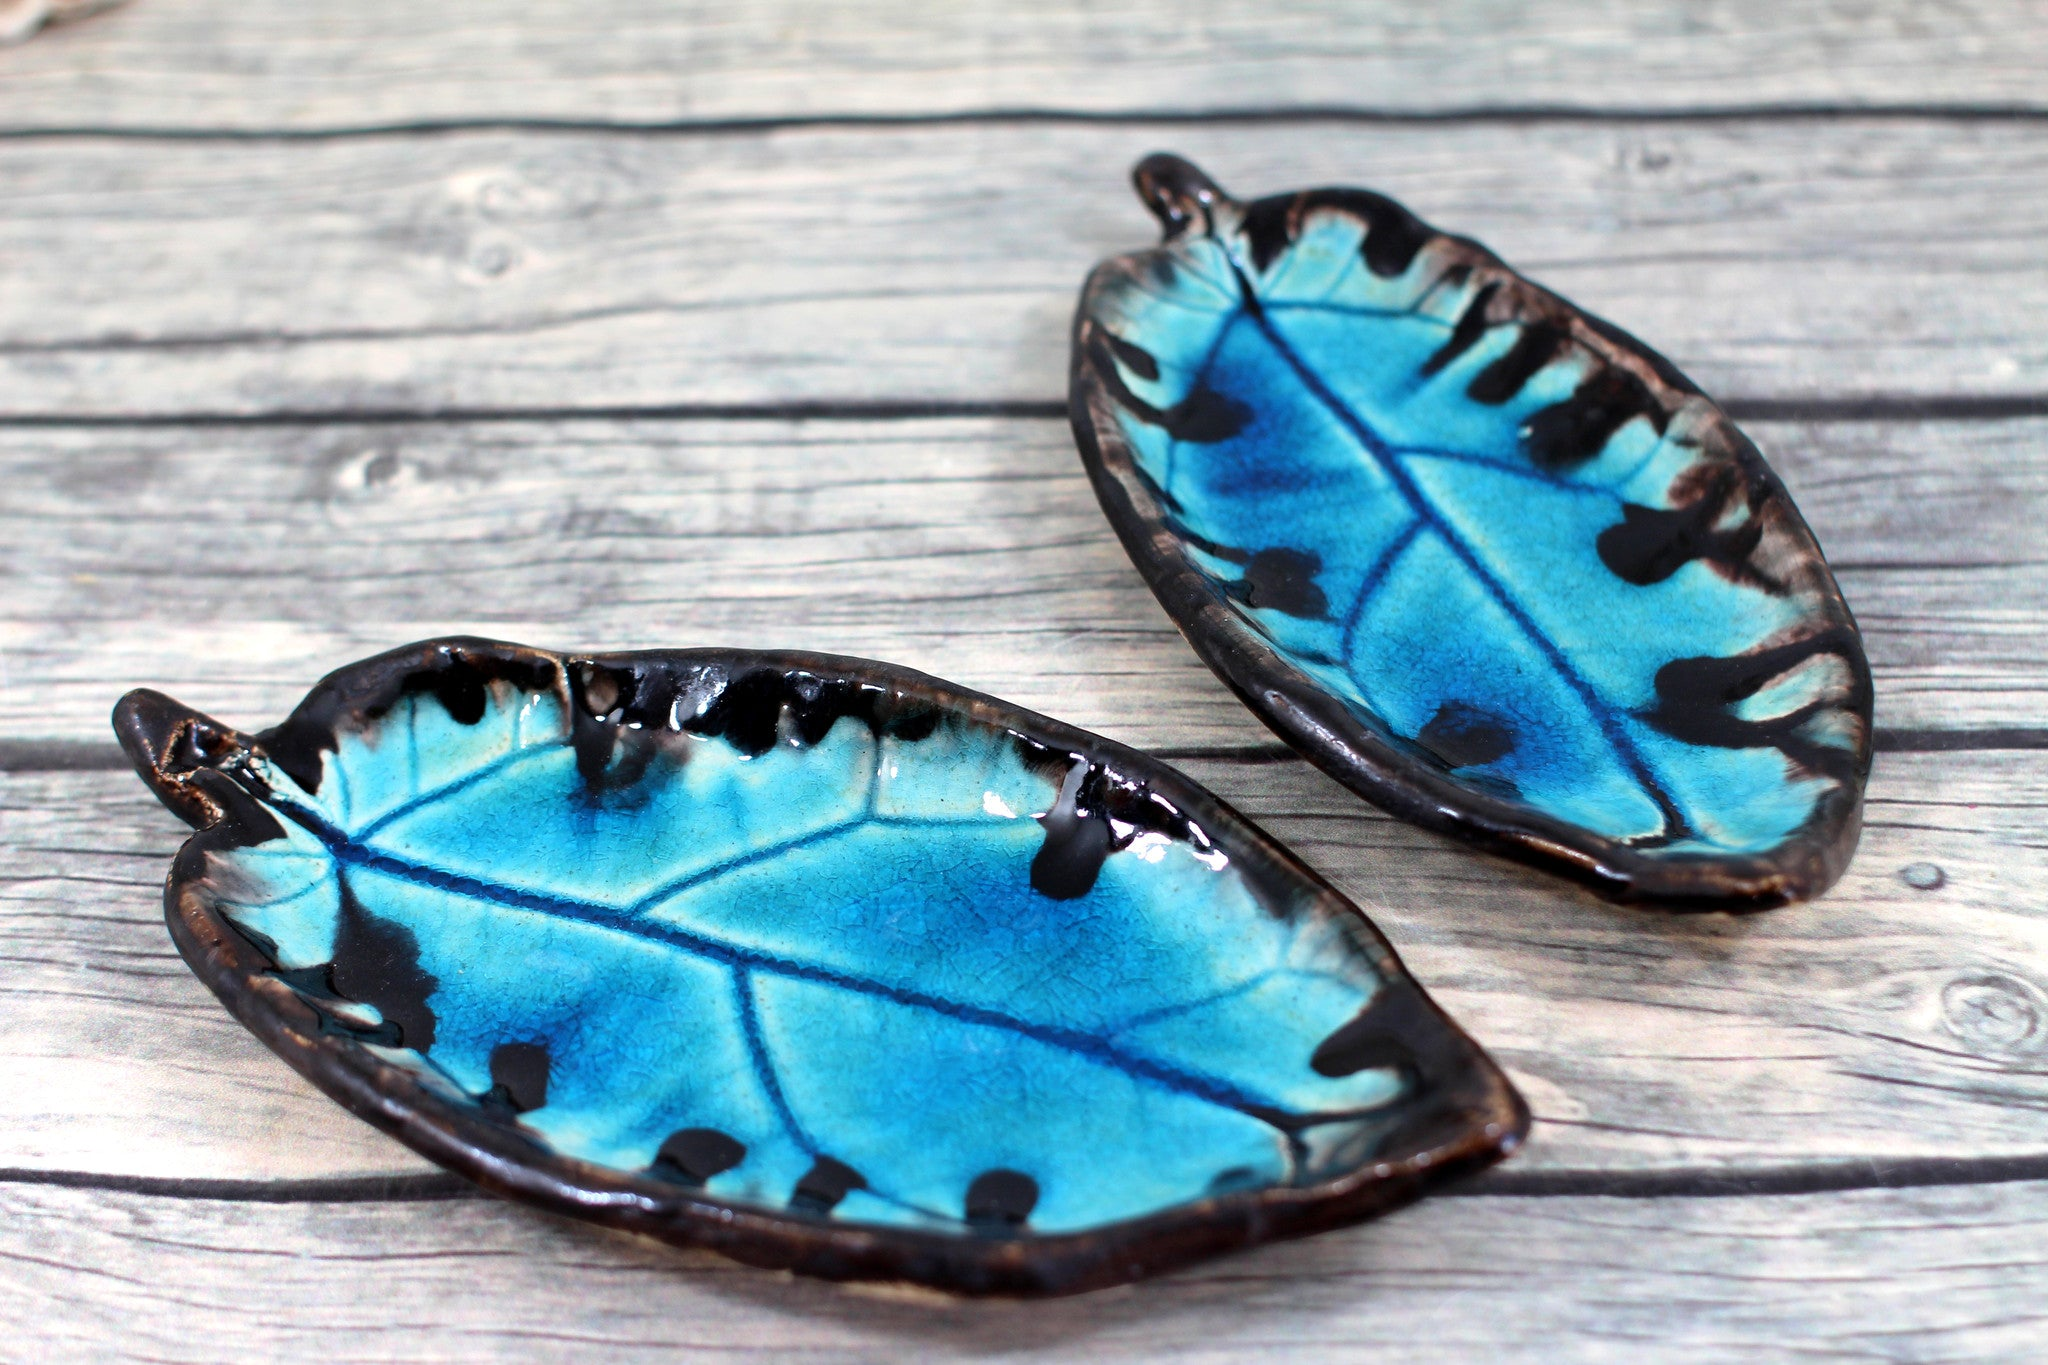 Ceramic Leaves Home decor Soap dish Jewelry holder - Ceramics By Orly  - 1